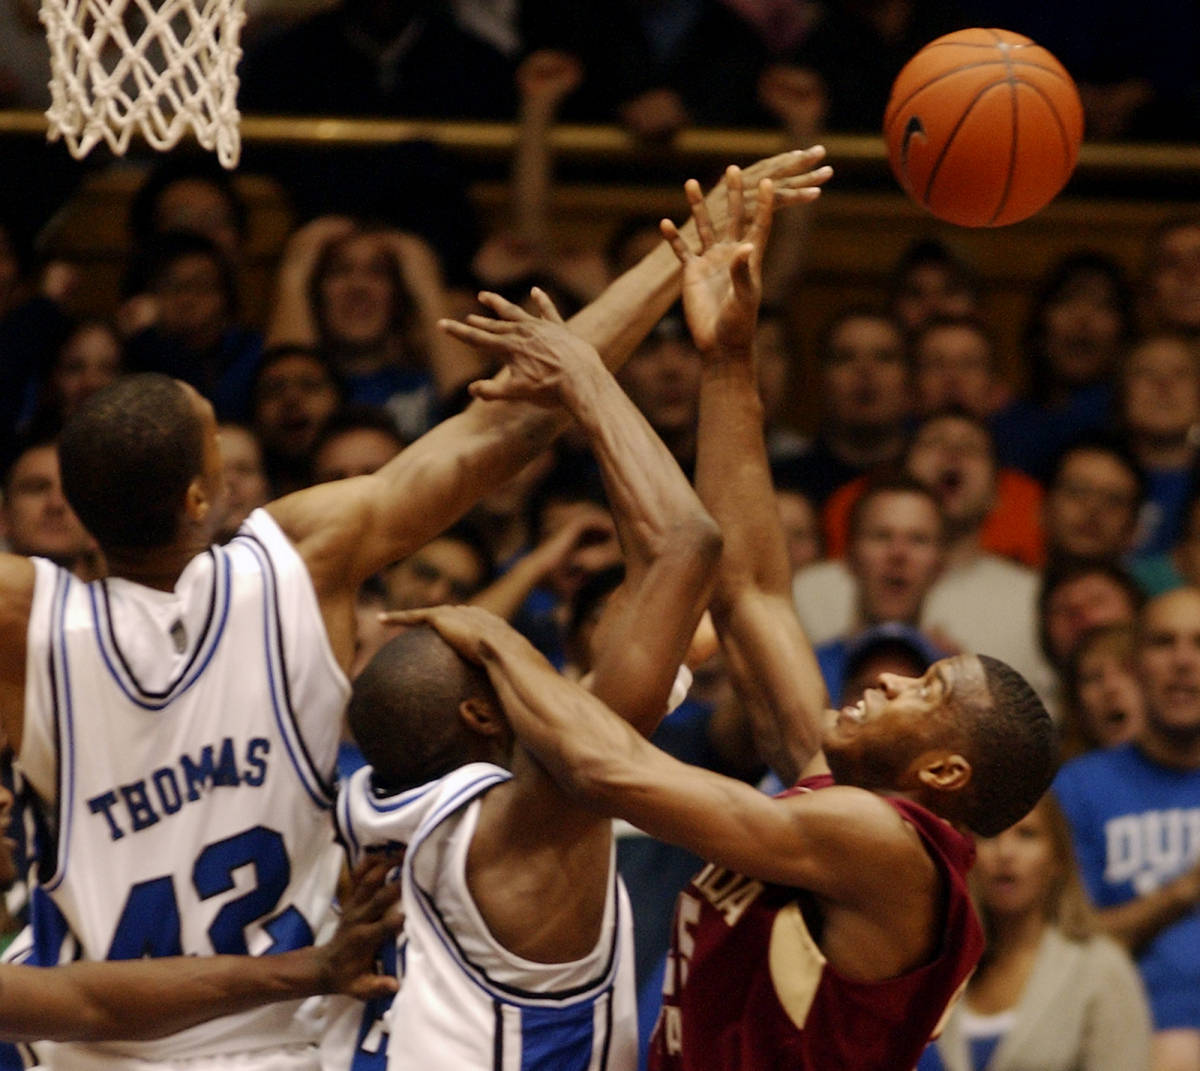 Florida State's Jason Rich, right, battles for a rebound over Duke's Lance Thomas (42) and DeMarcus Nelson, center, in the second half of a basketball game in Durham, N.C., on Sunday, Feb. 4, 2007. Florida State upset Duke, 68-67. (AP Photo/Sara D. Davis)